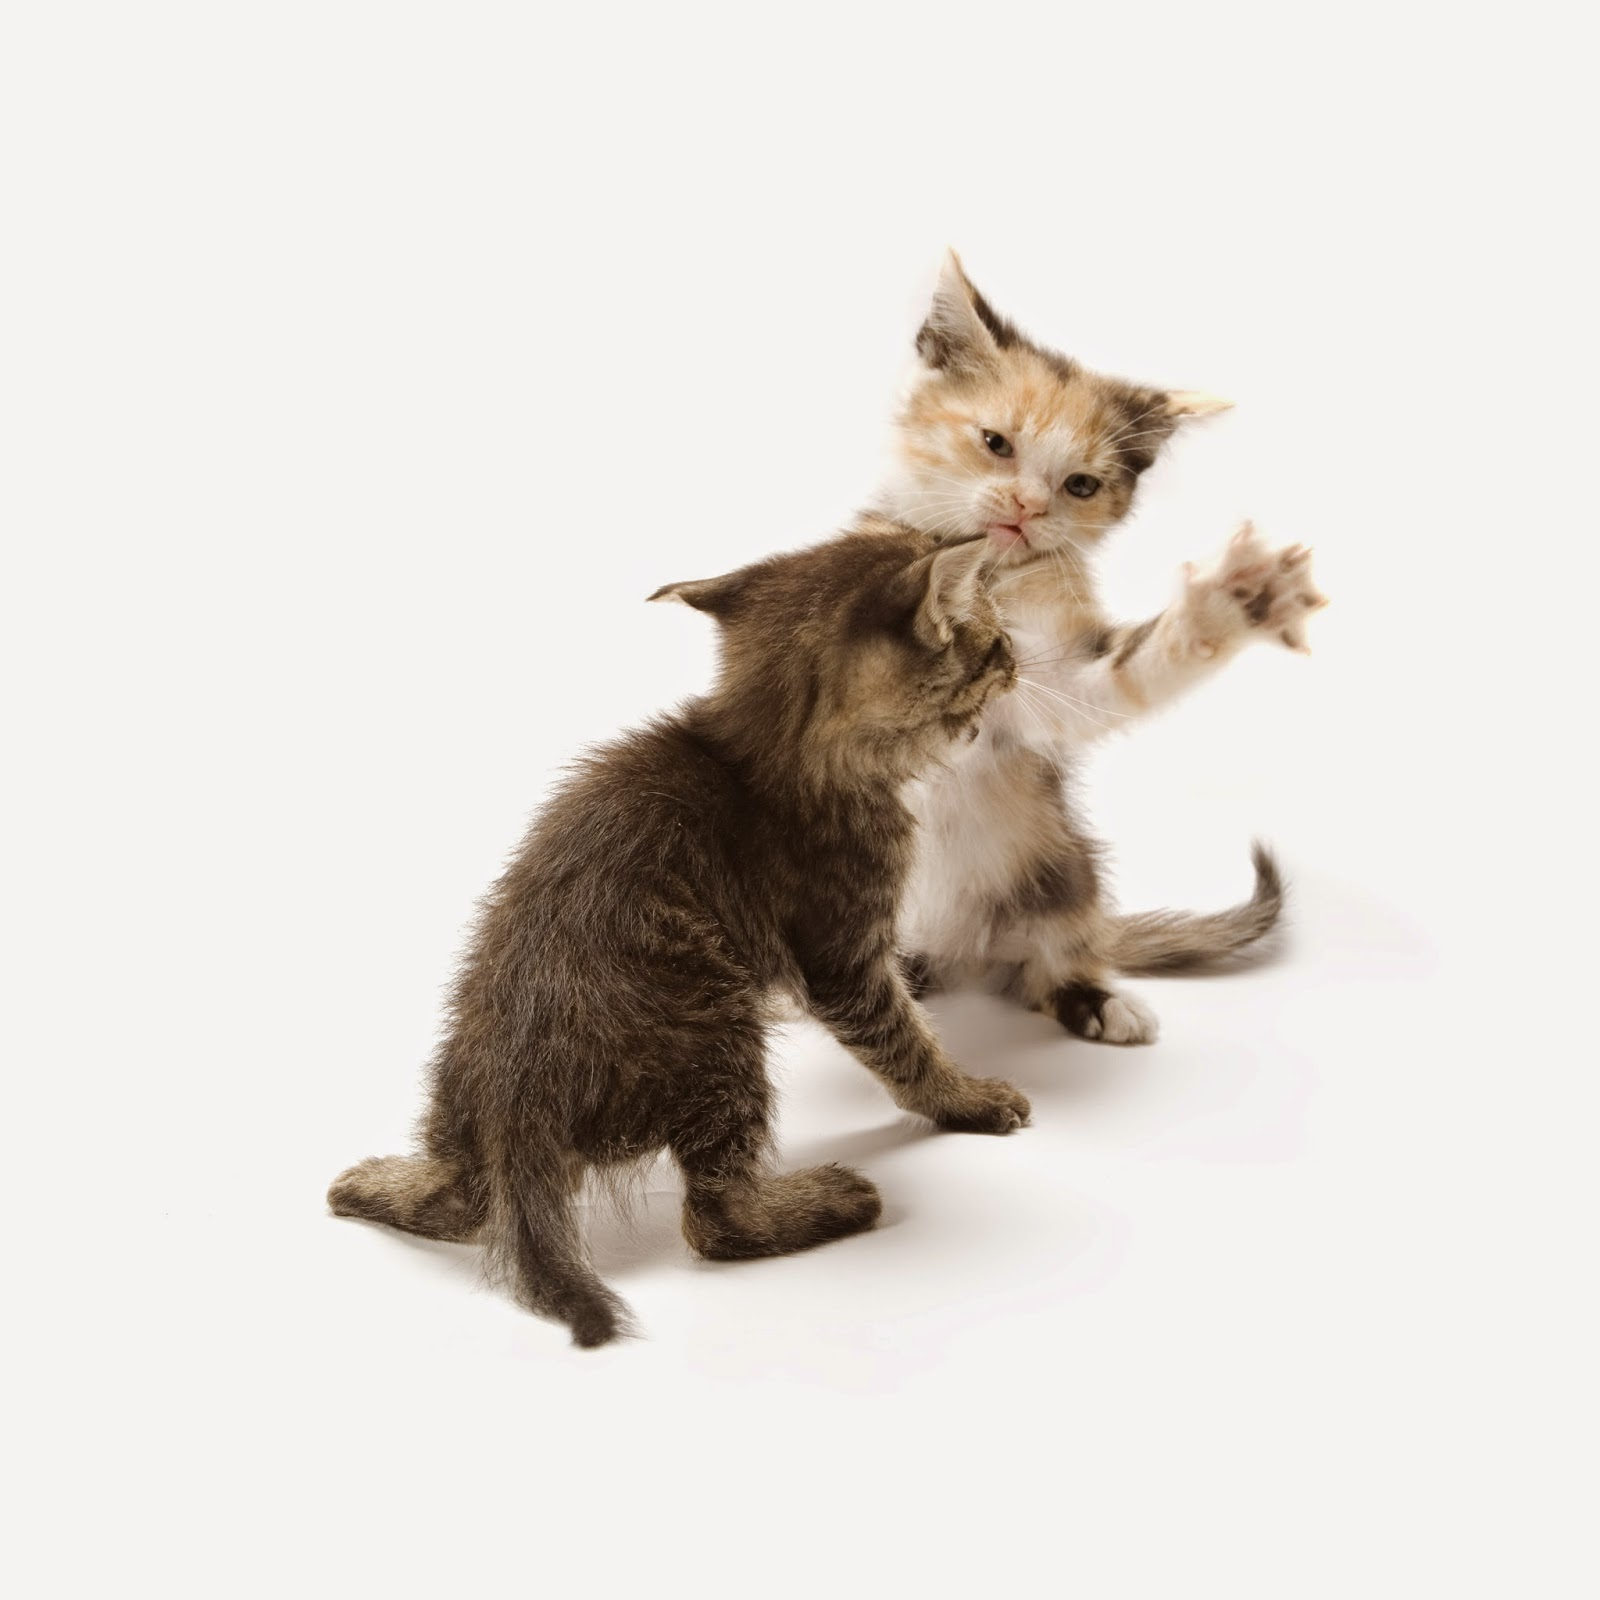 Kittens fighting